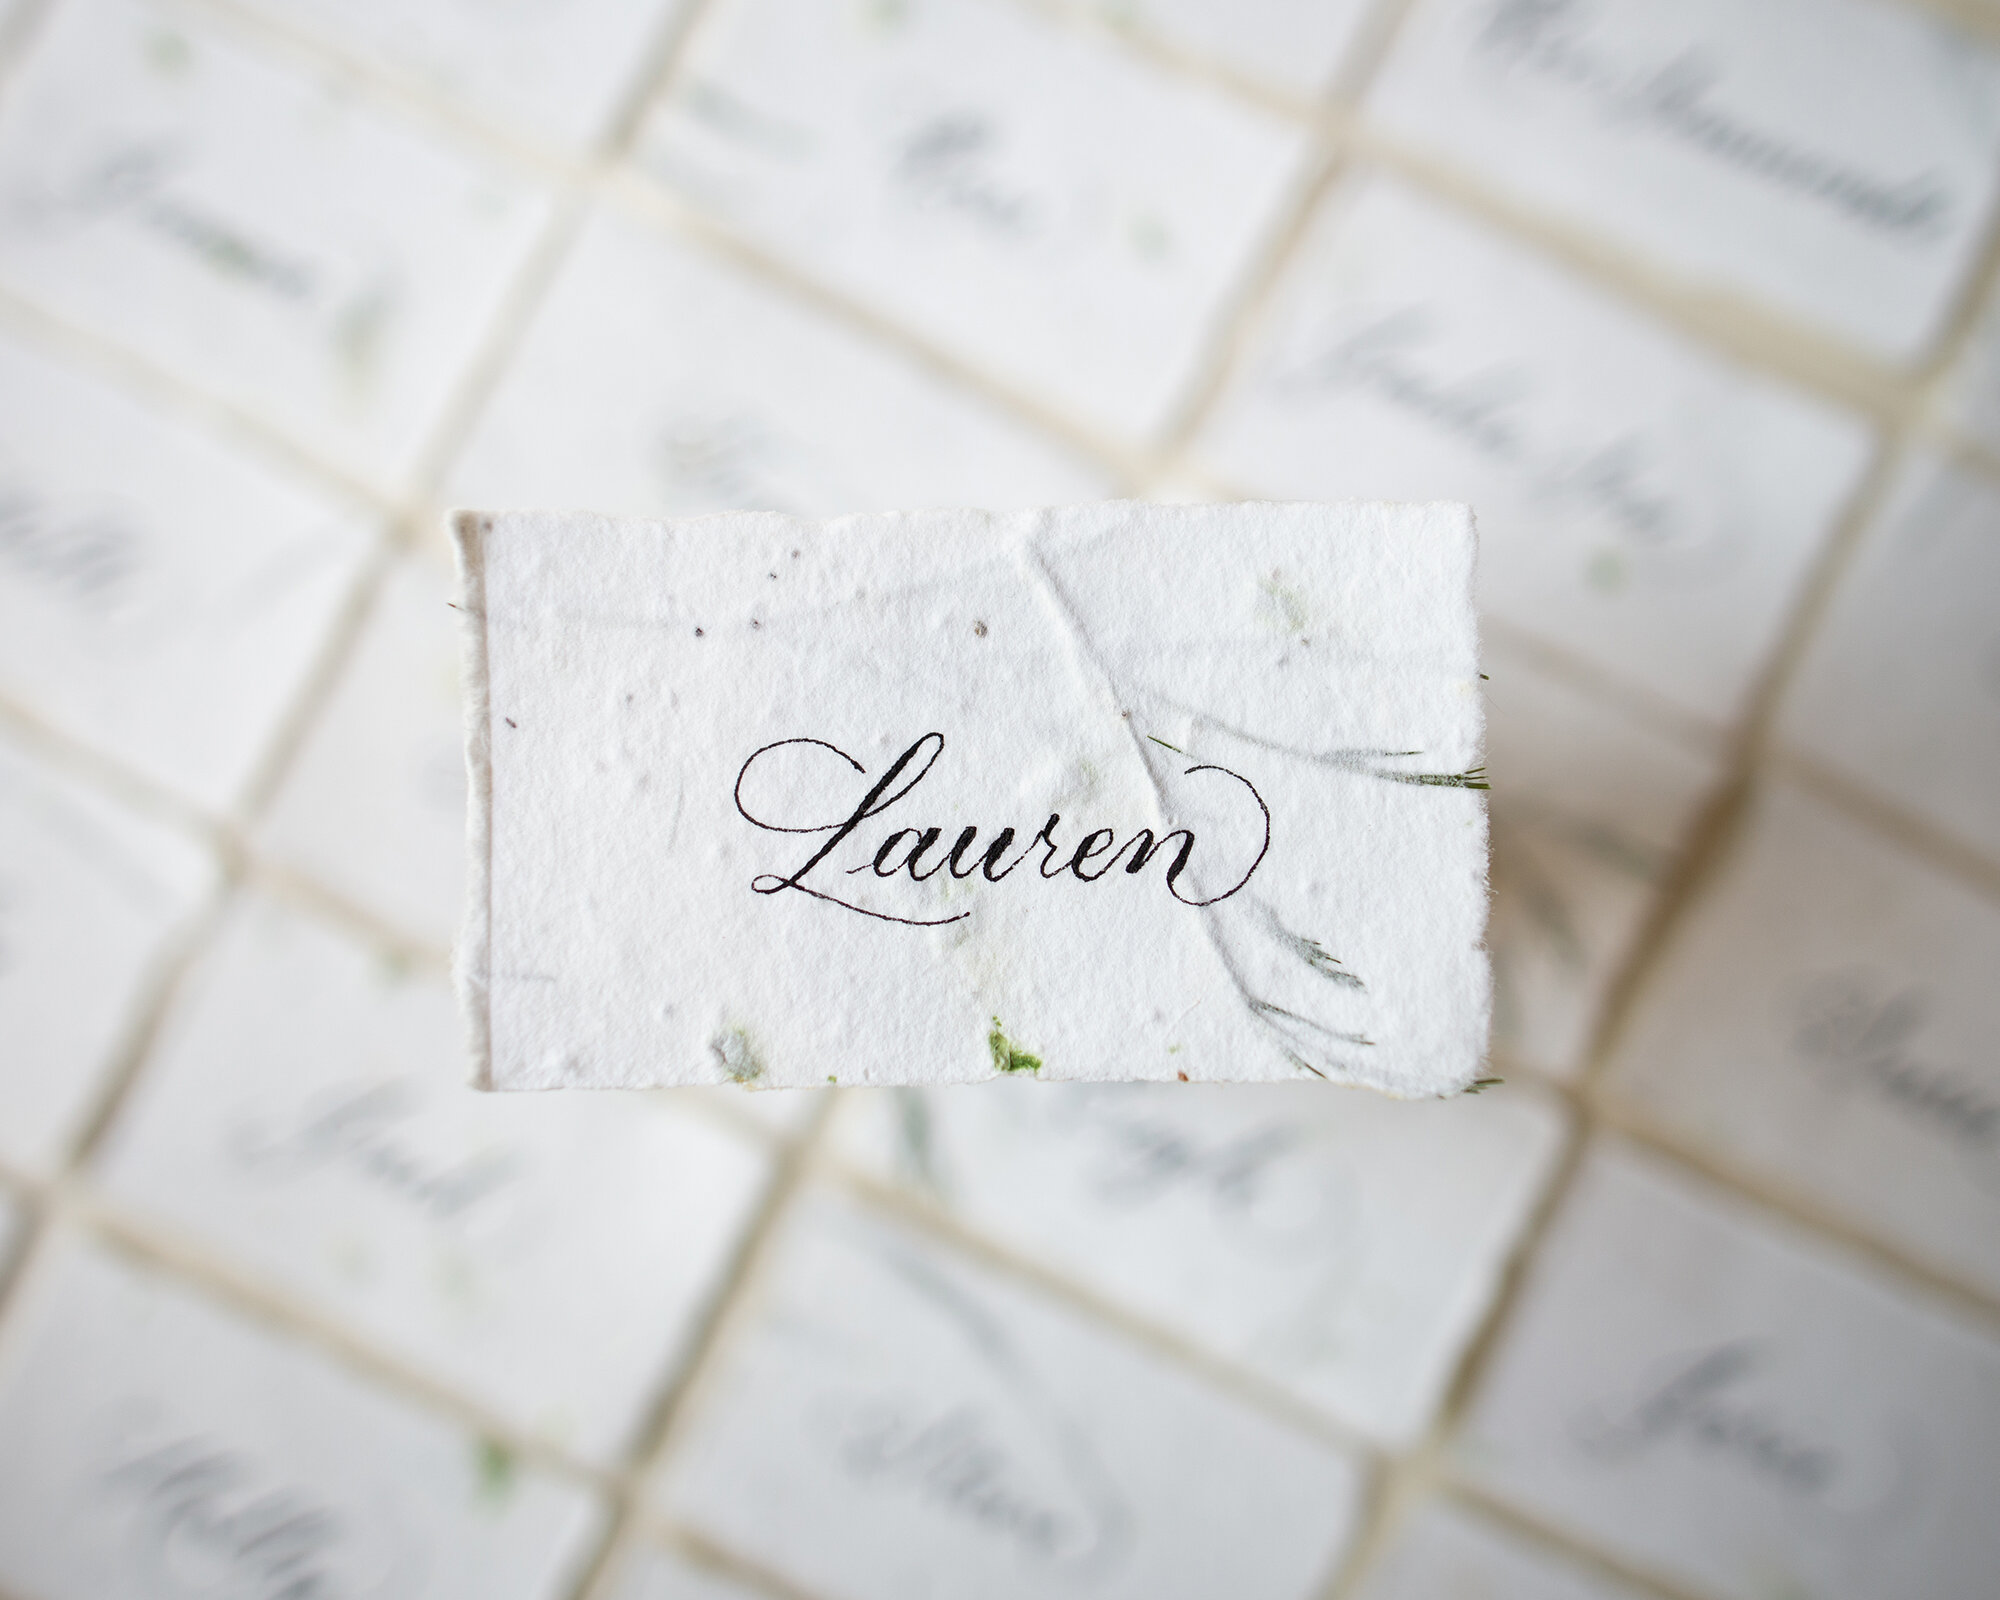 Handmade paper with real flower seeds and Copperplate calligraphy (Patricia Style) place cards